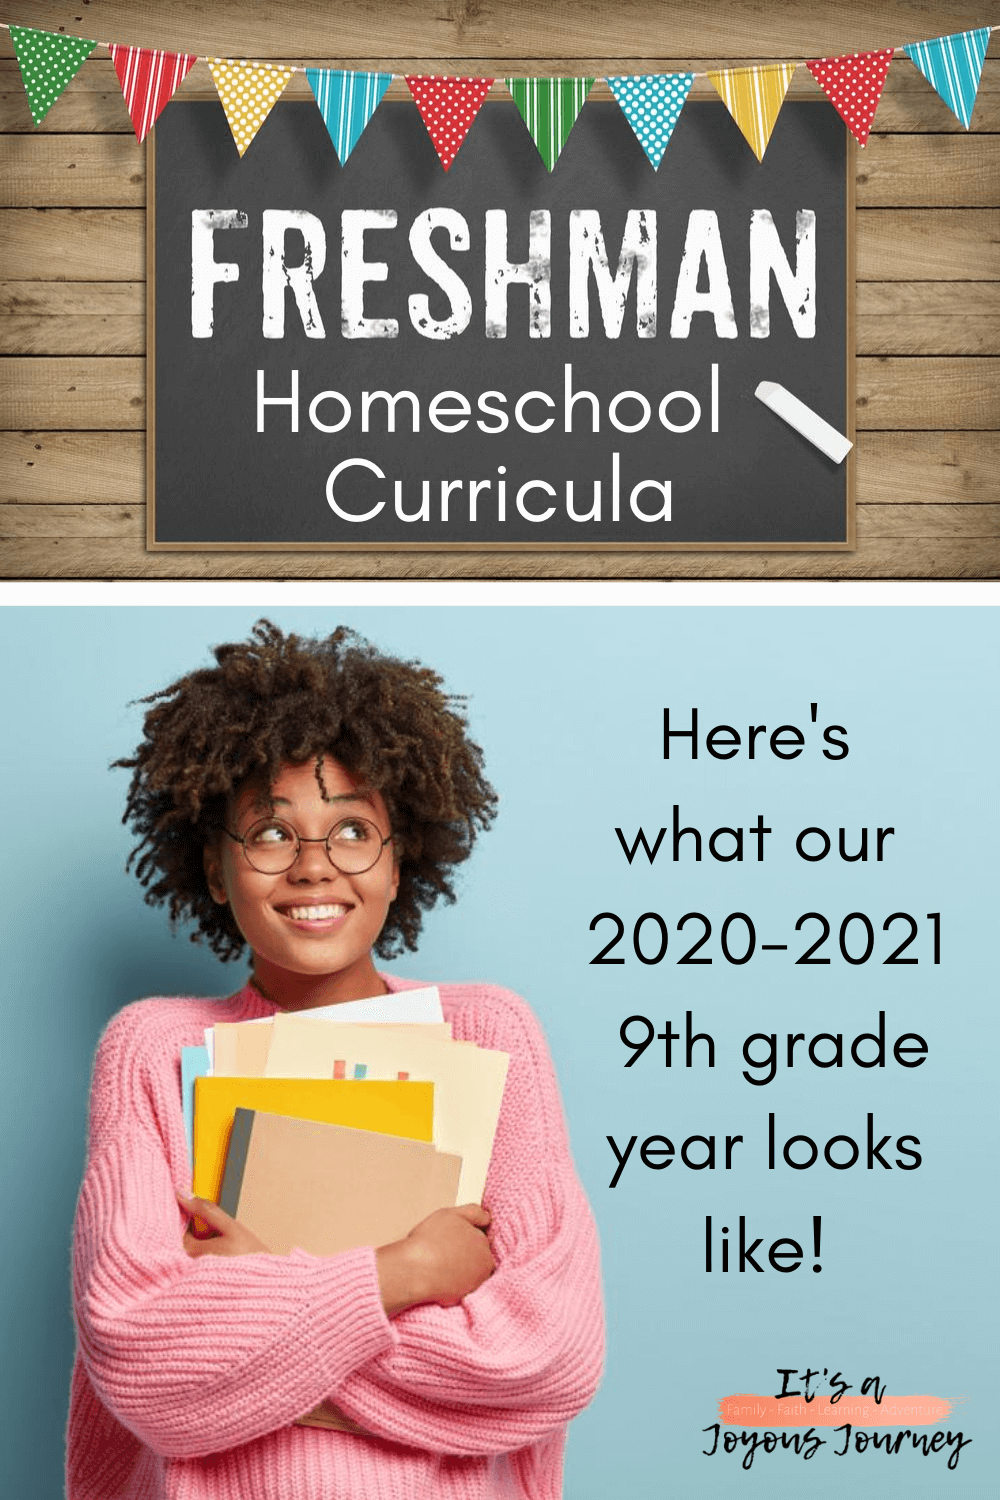 Homeschool_Curricula_for_9th_Grade